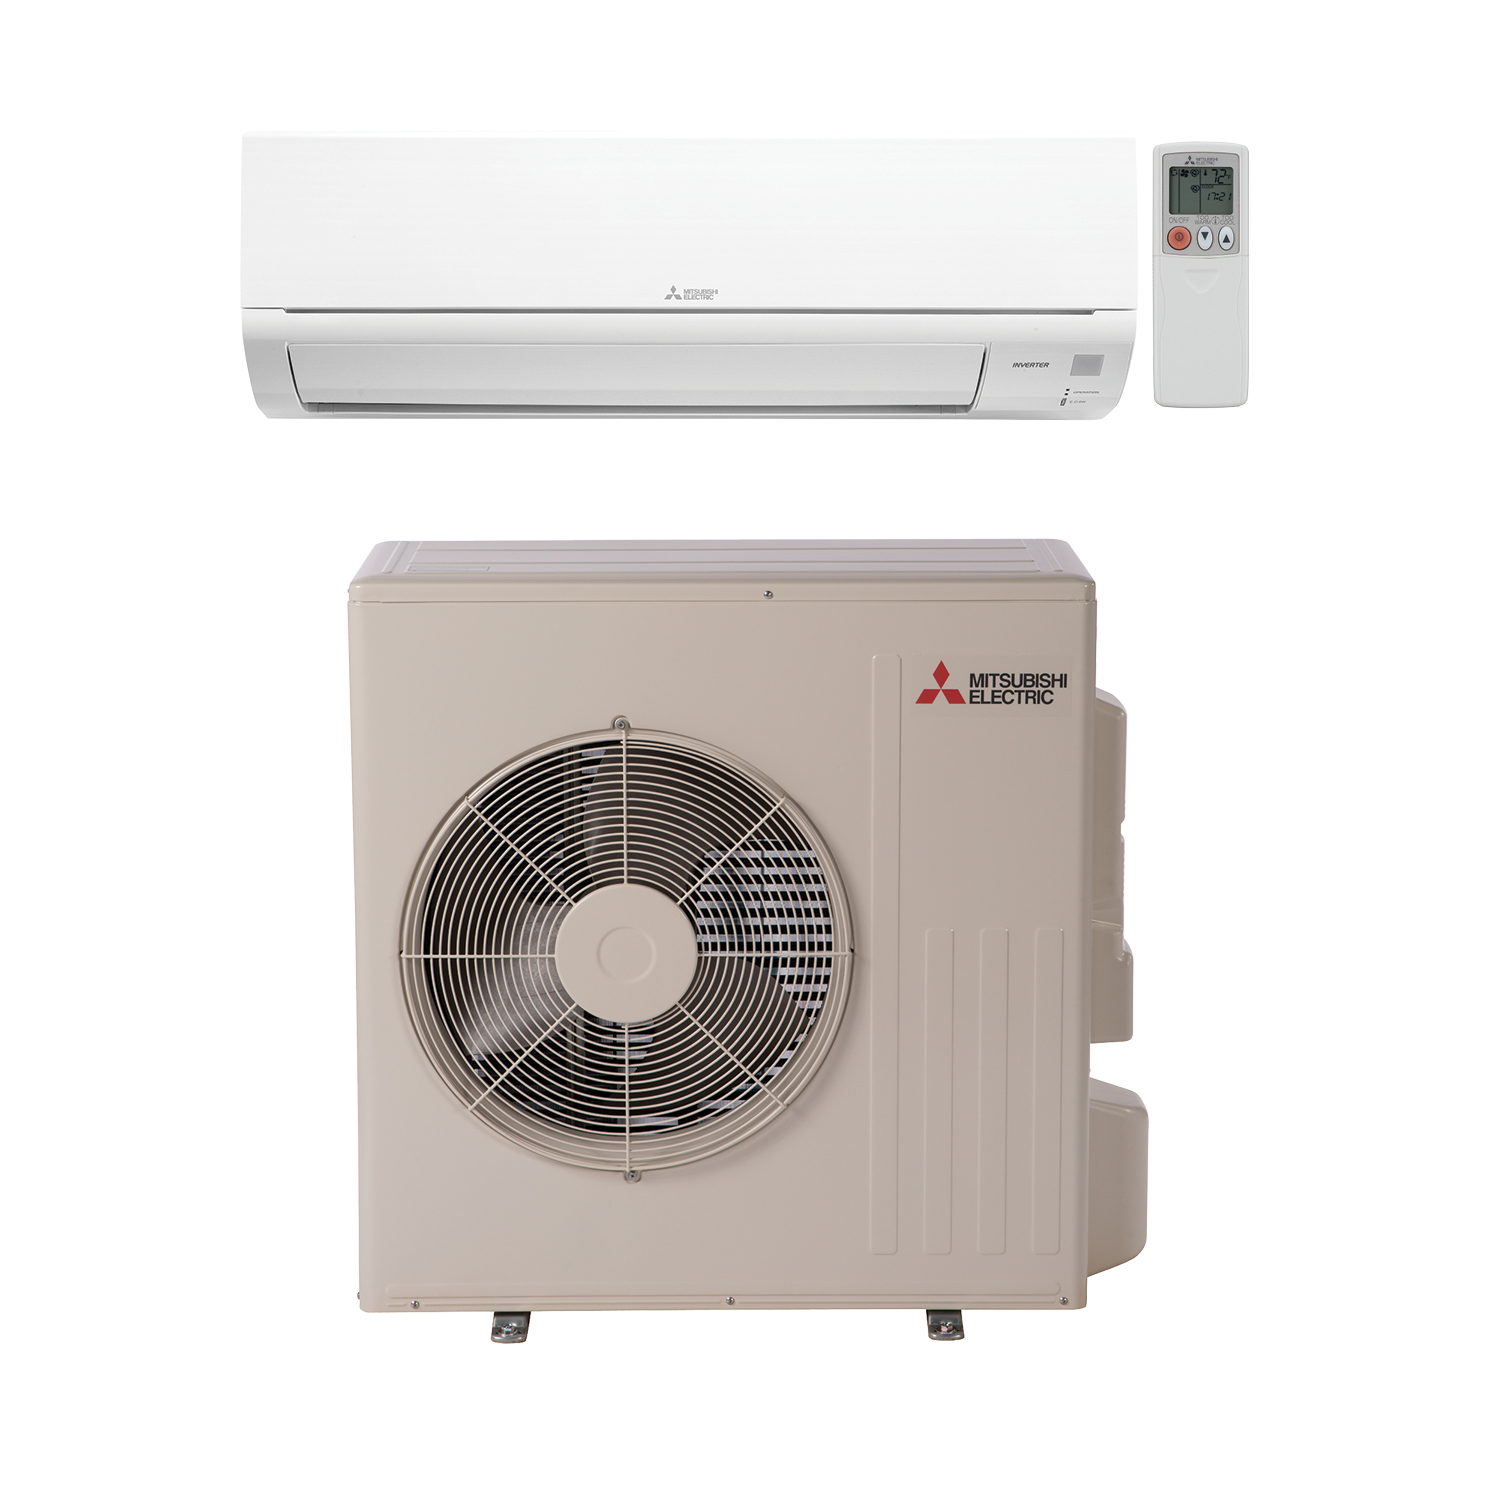 Ductless AC/Heat Pump Installed (2 units available per month at 100% BizX)